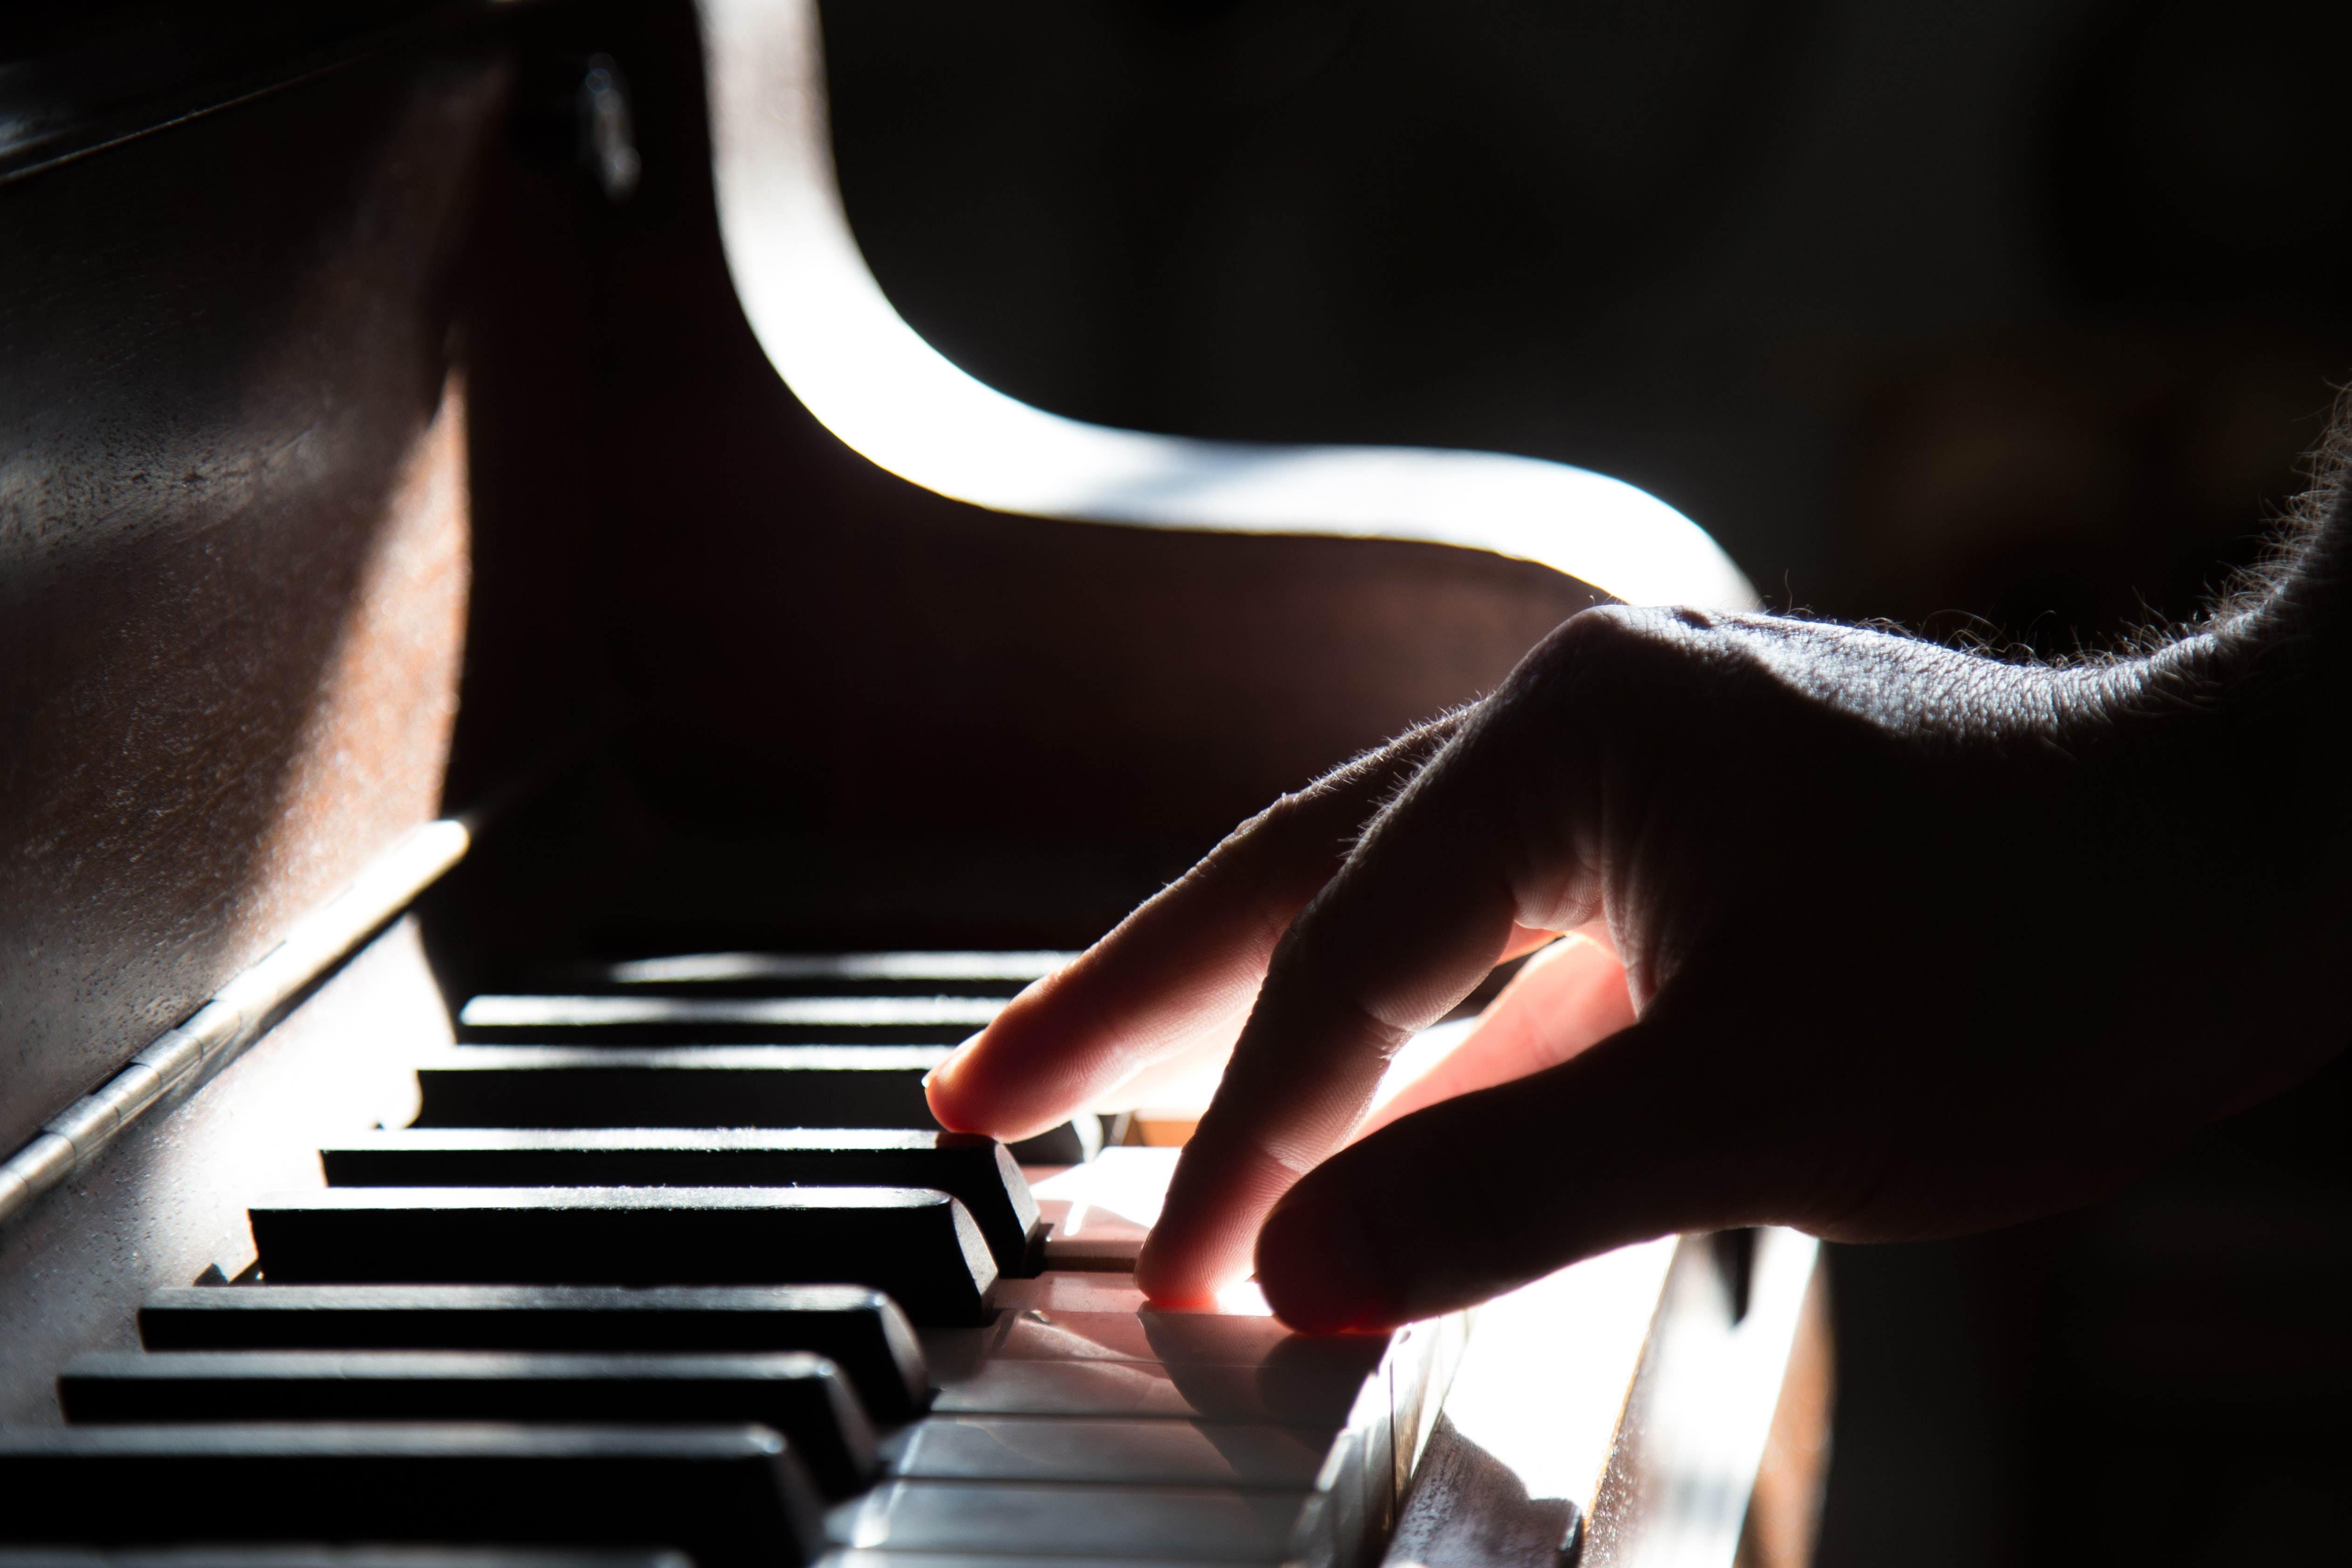 A person playing the piano in the light